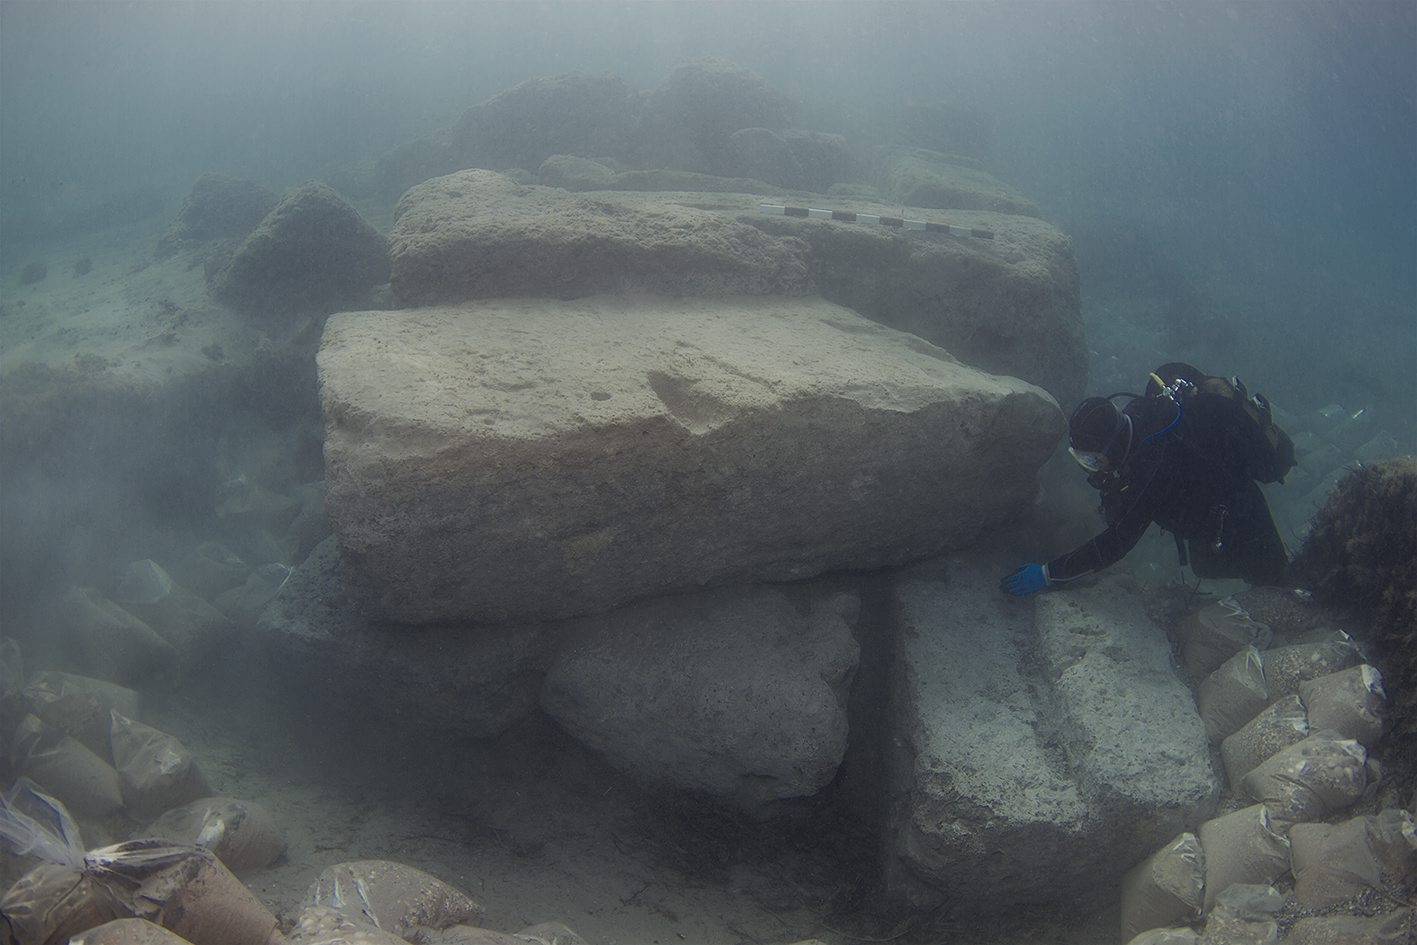 Sunken harbor found underwater in Greece